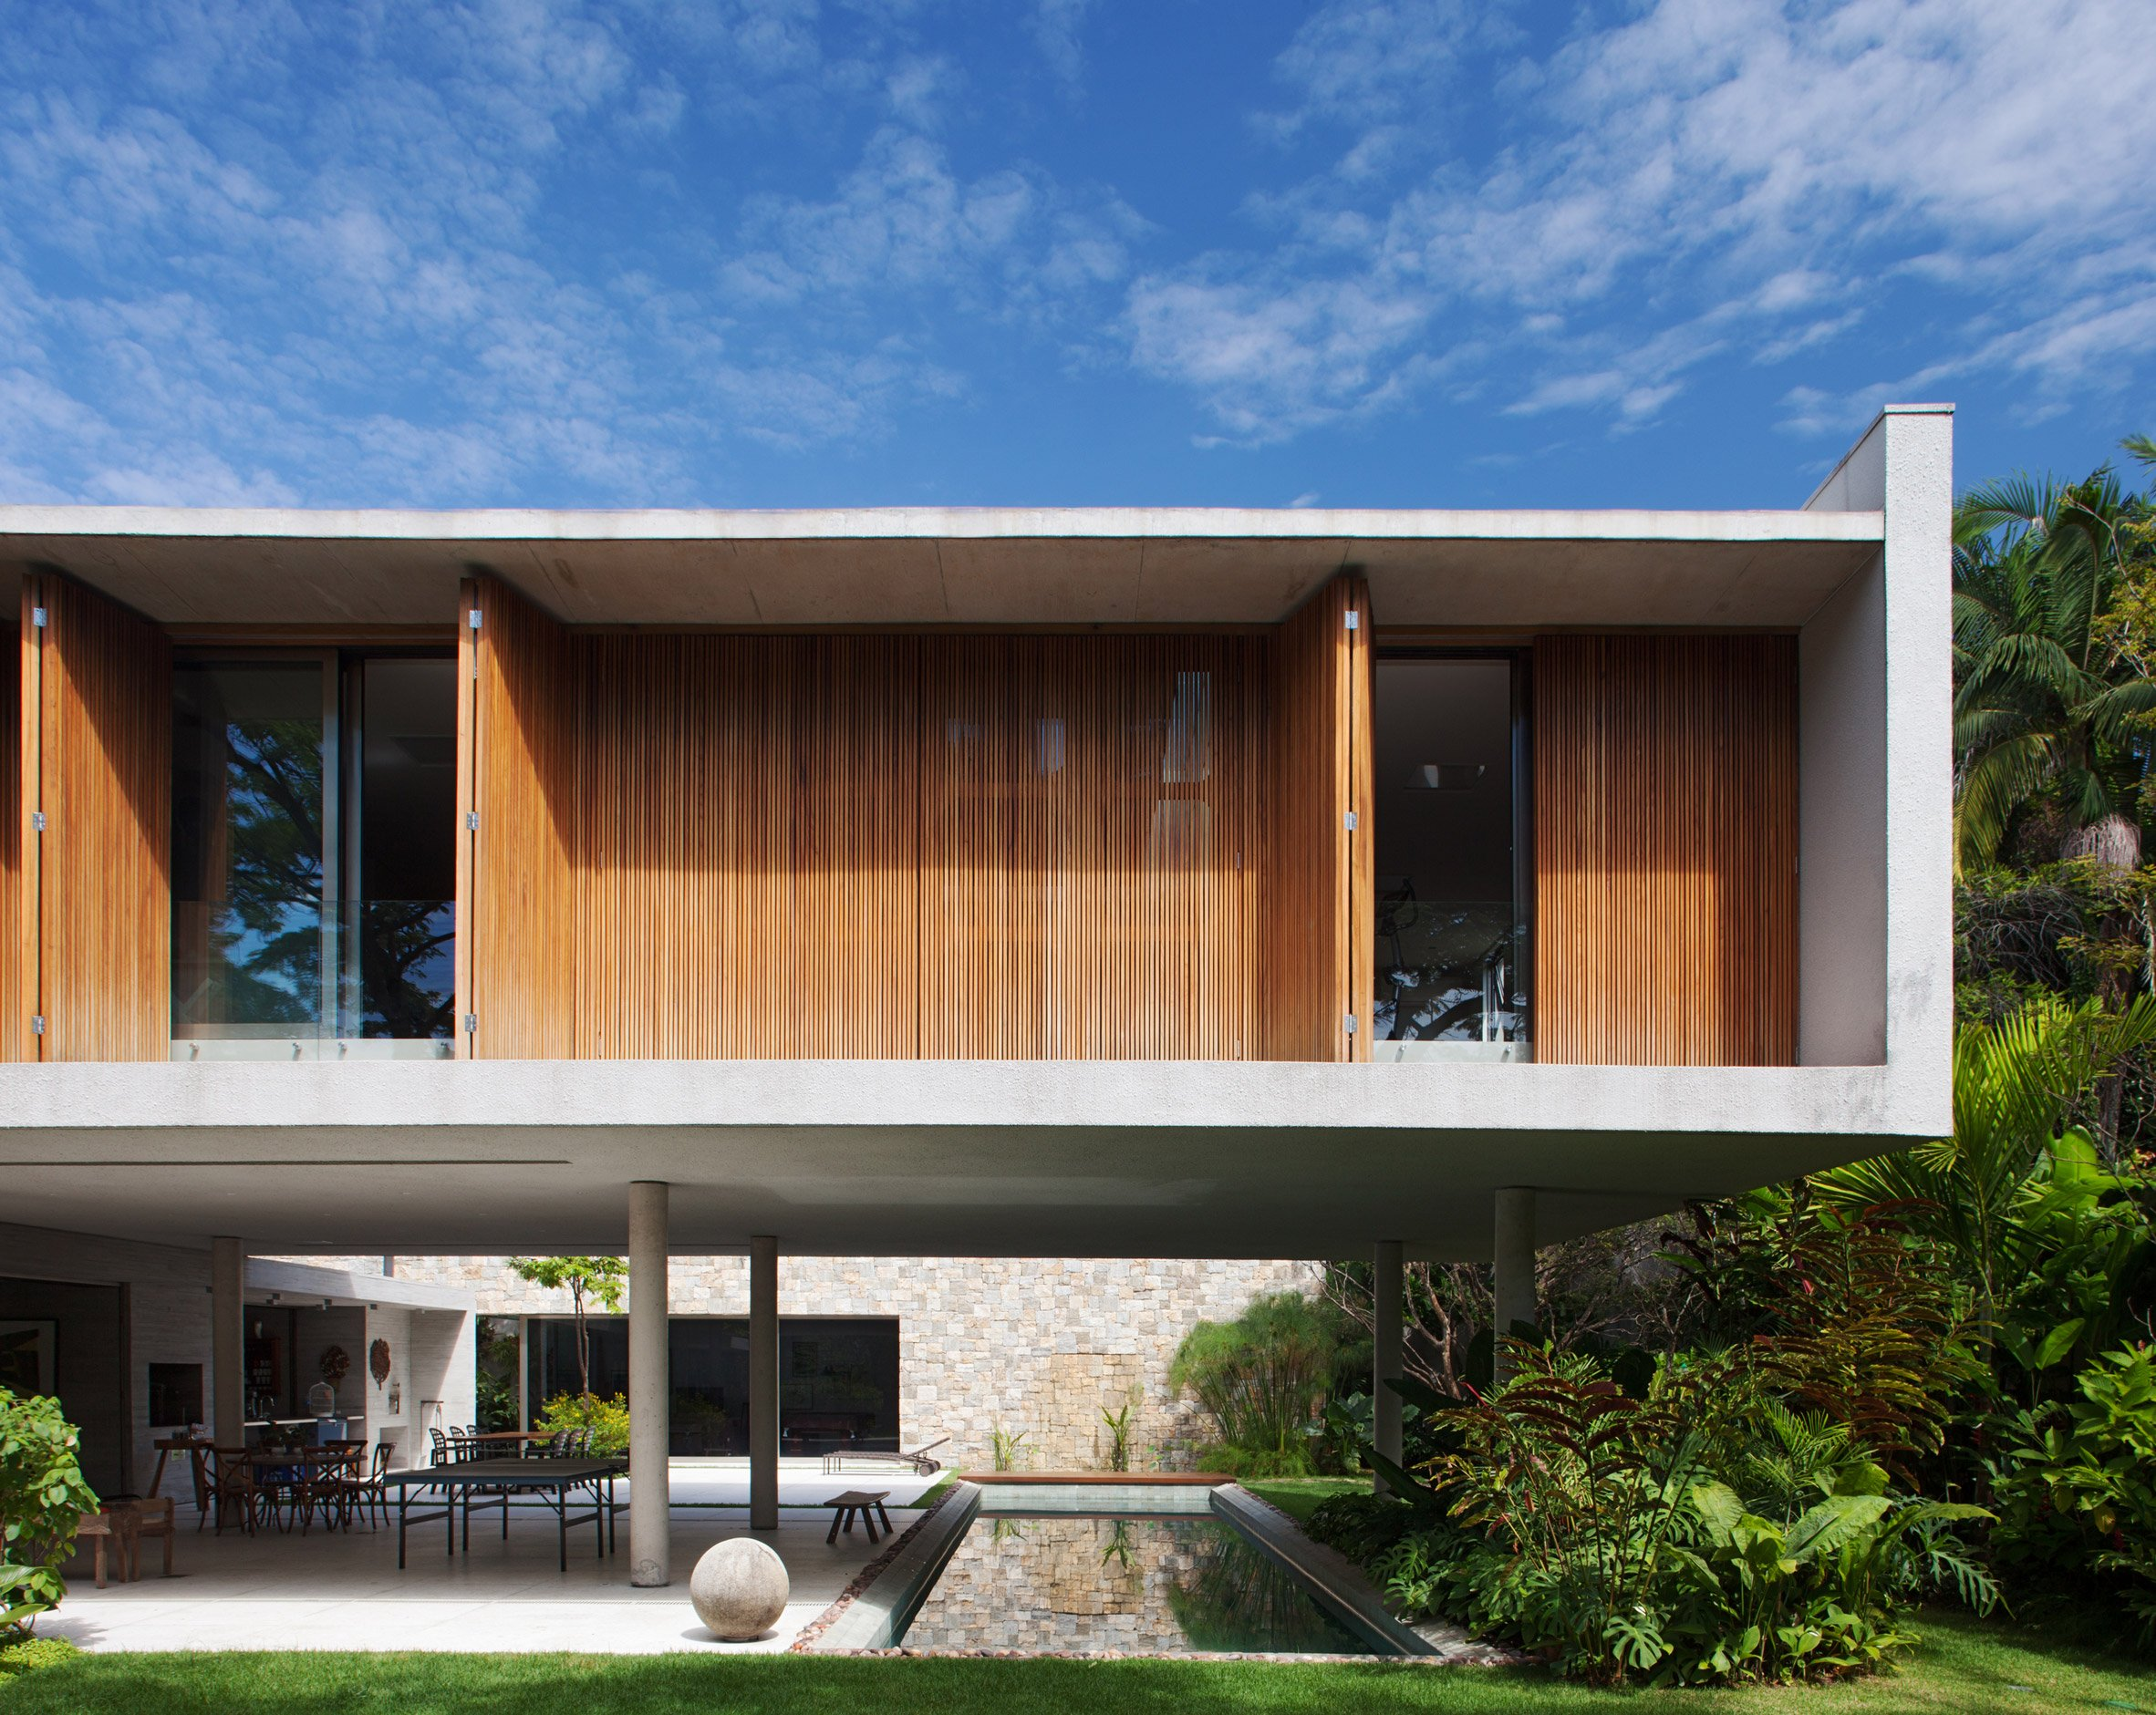 Perkins+Will places shuttered bedrooms atop pilotis at São Paulo house